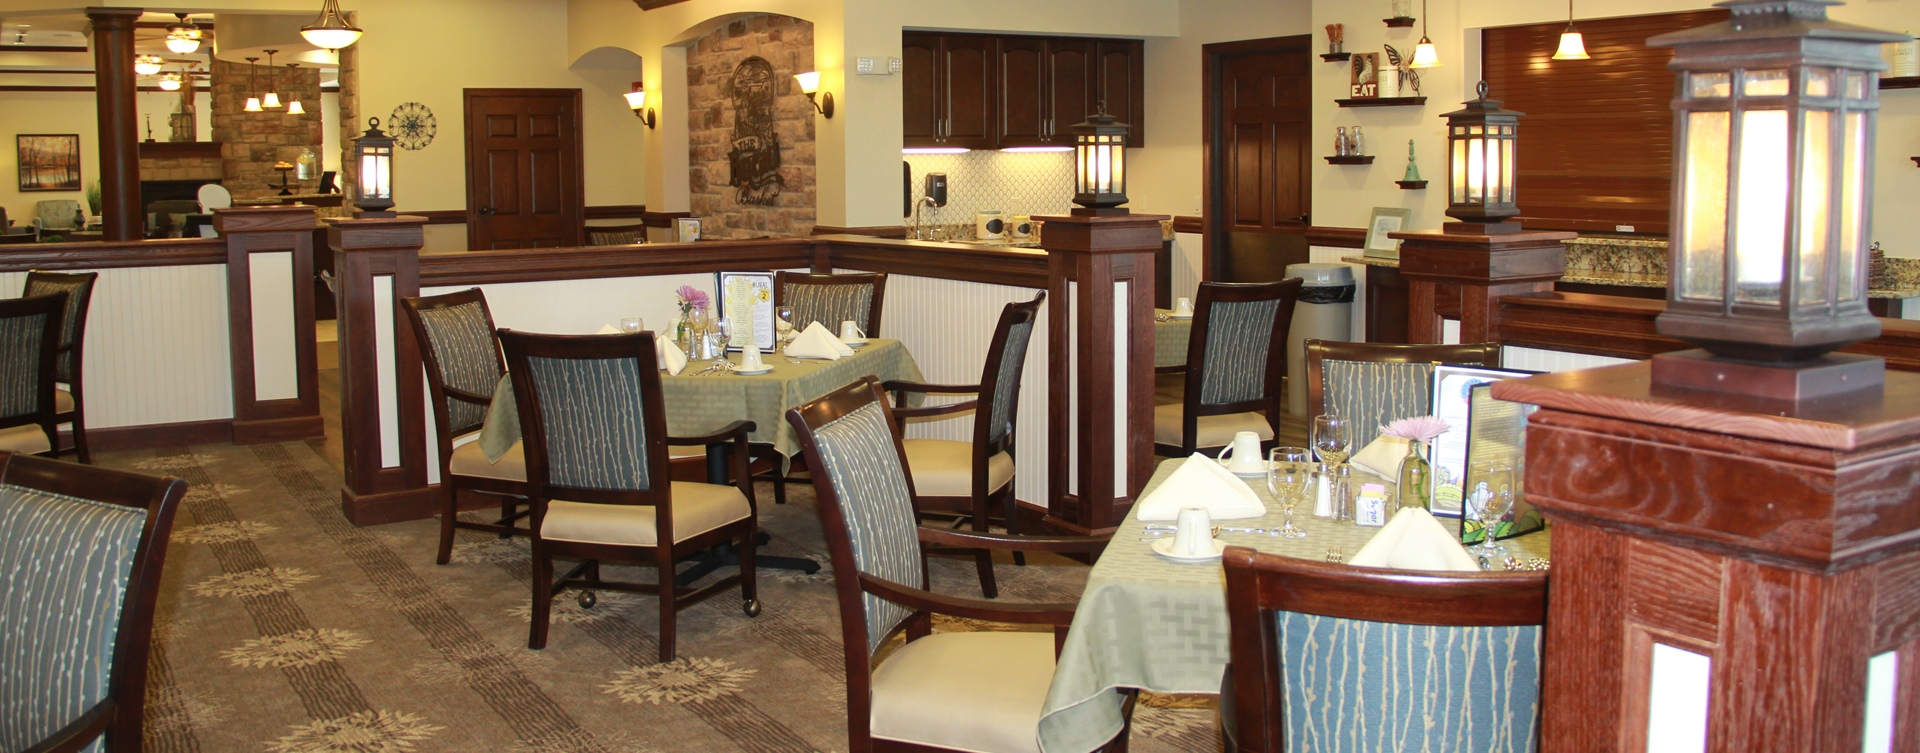 Enjoy restaurant -style meals served three times a day in our dining room at Bickford of Chesterfield